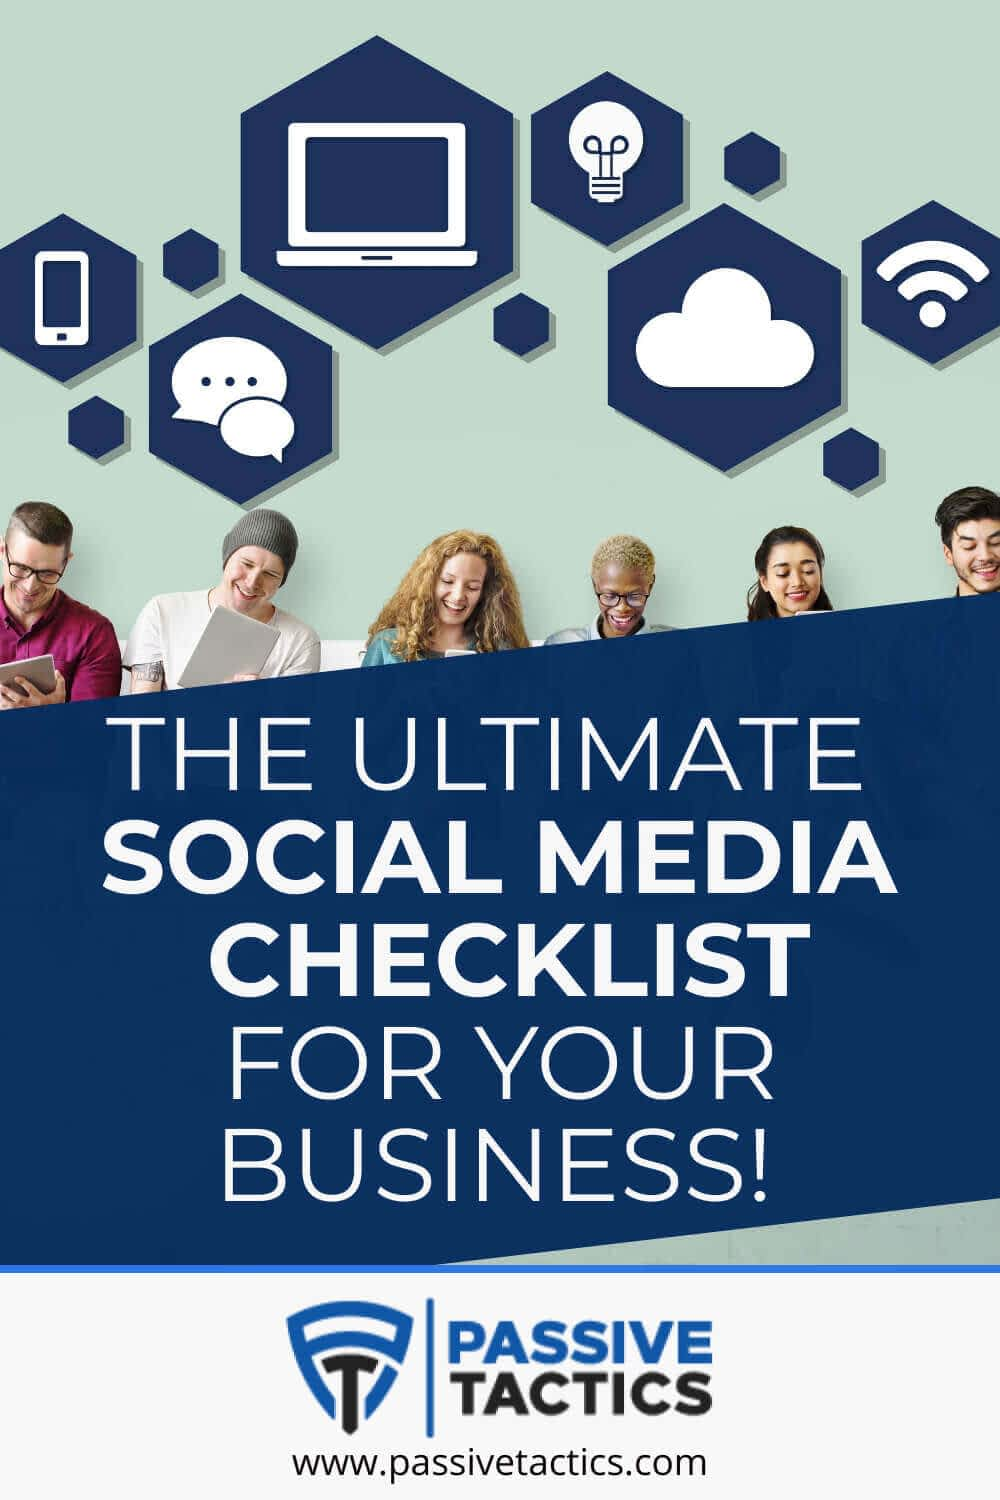 The Ultimate Social Media Checklist For Your Business